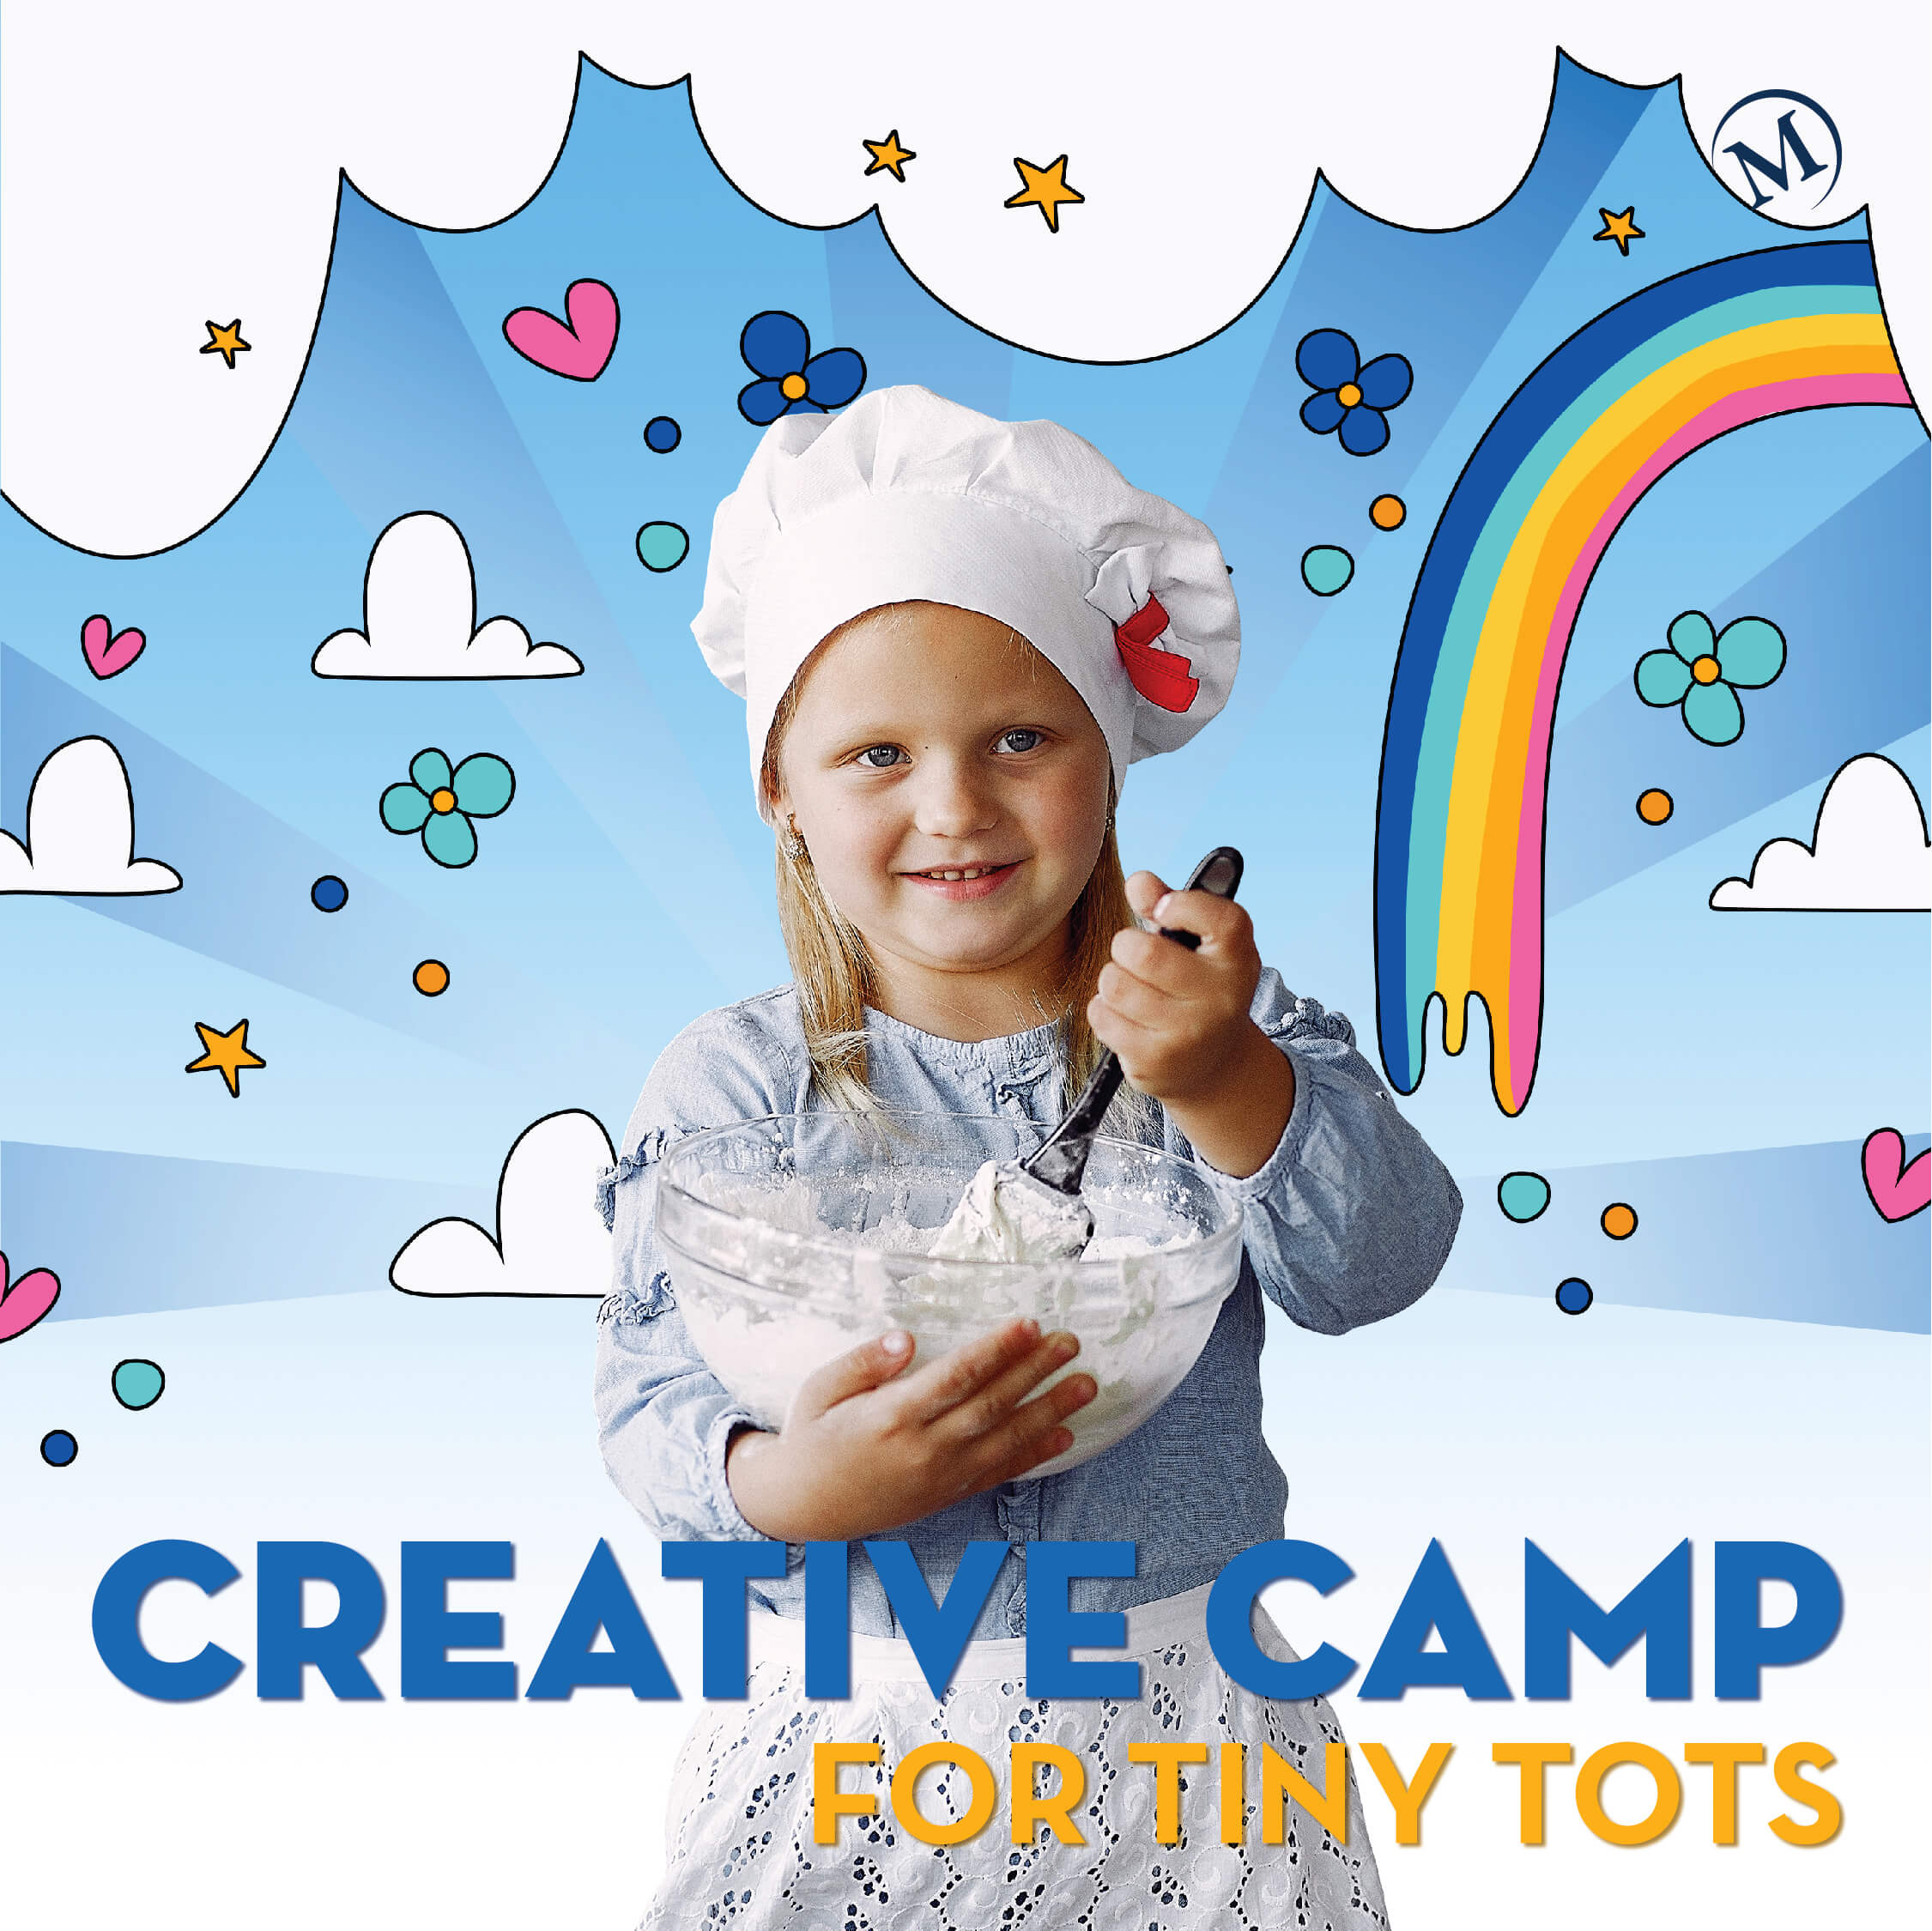 Creative Camp For Tinytots